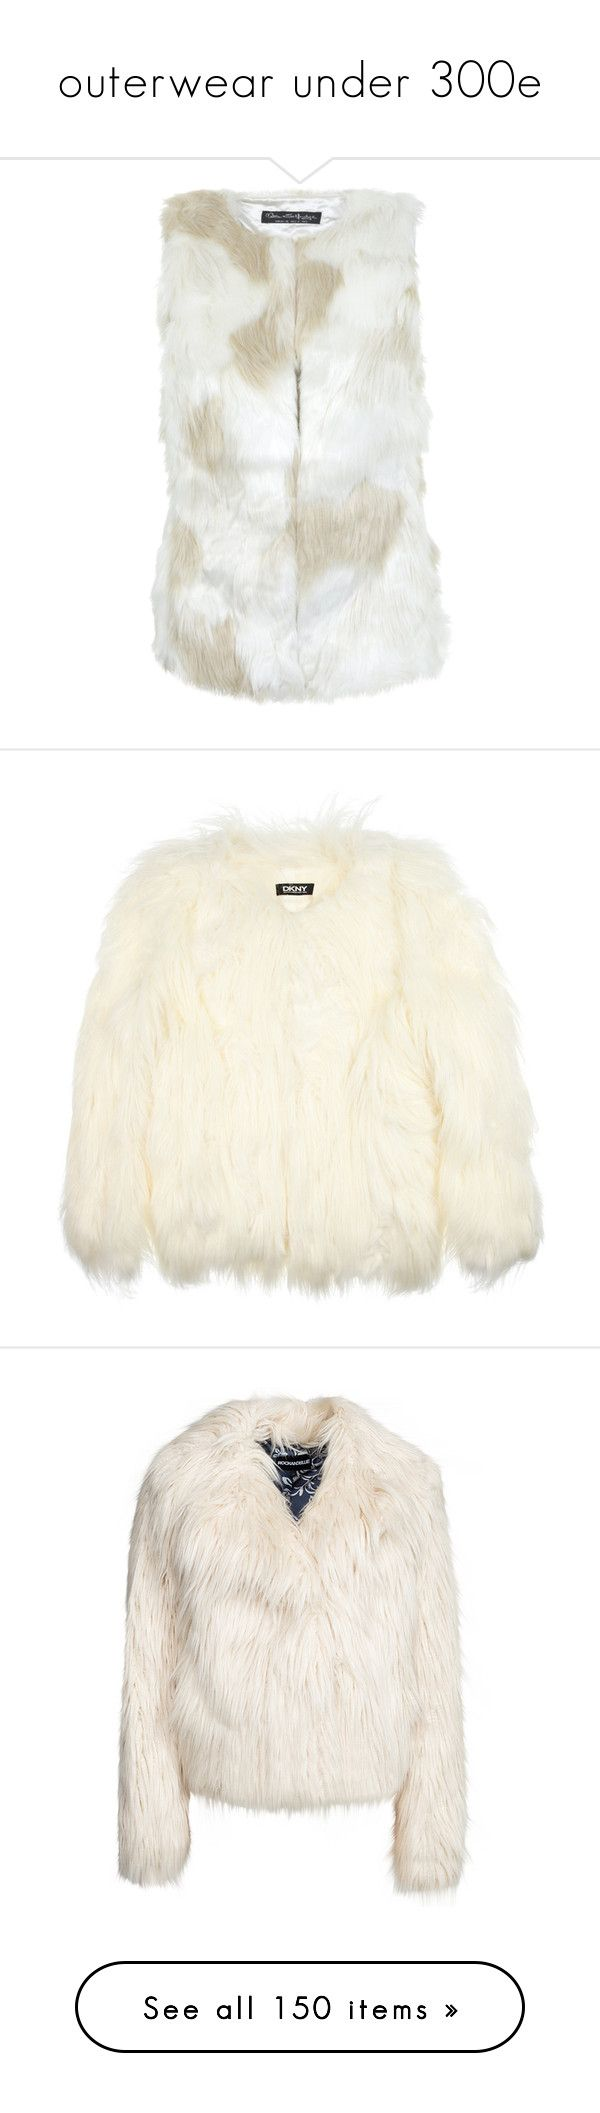 """""""outerwear under 300e"""" by evenaka ❤ liked on Polyvore featuring outerwear, vests, fur, white vest, faux fur waistcoat, white waistcoat, white faux fur vest, cream faux fur vest, jackets and coats"""